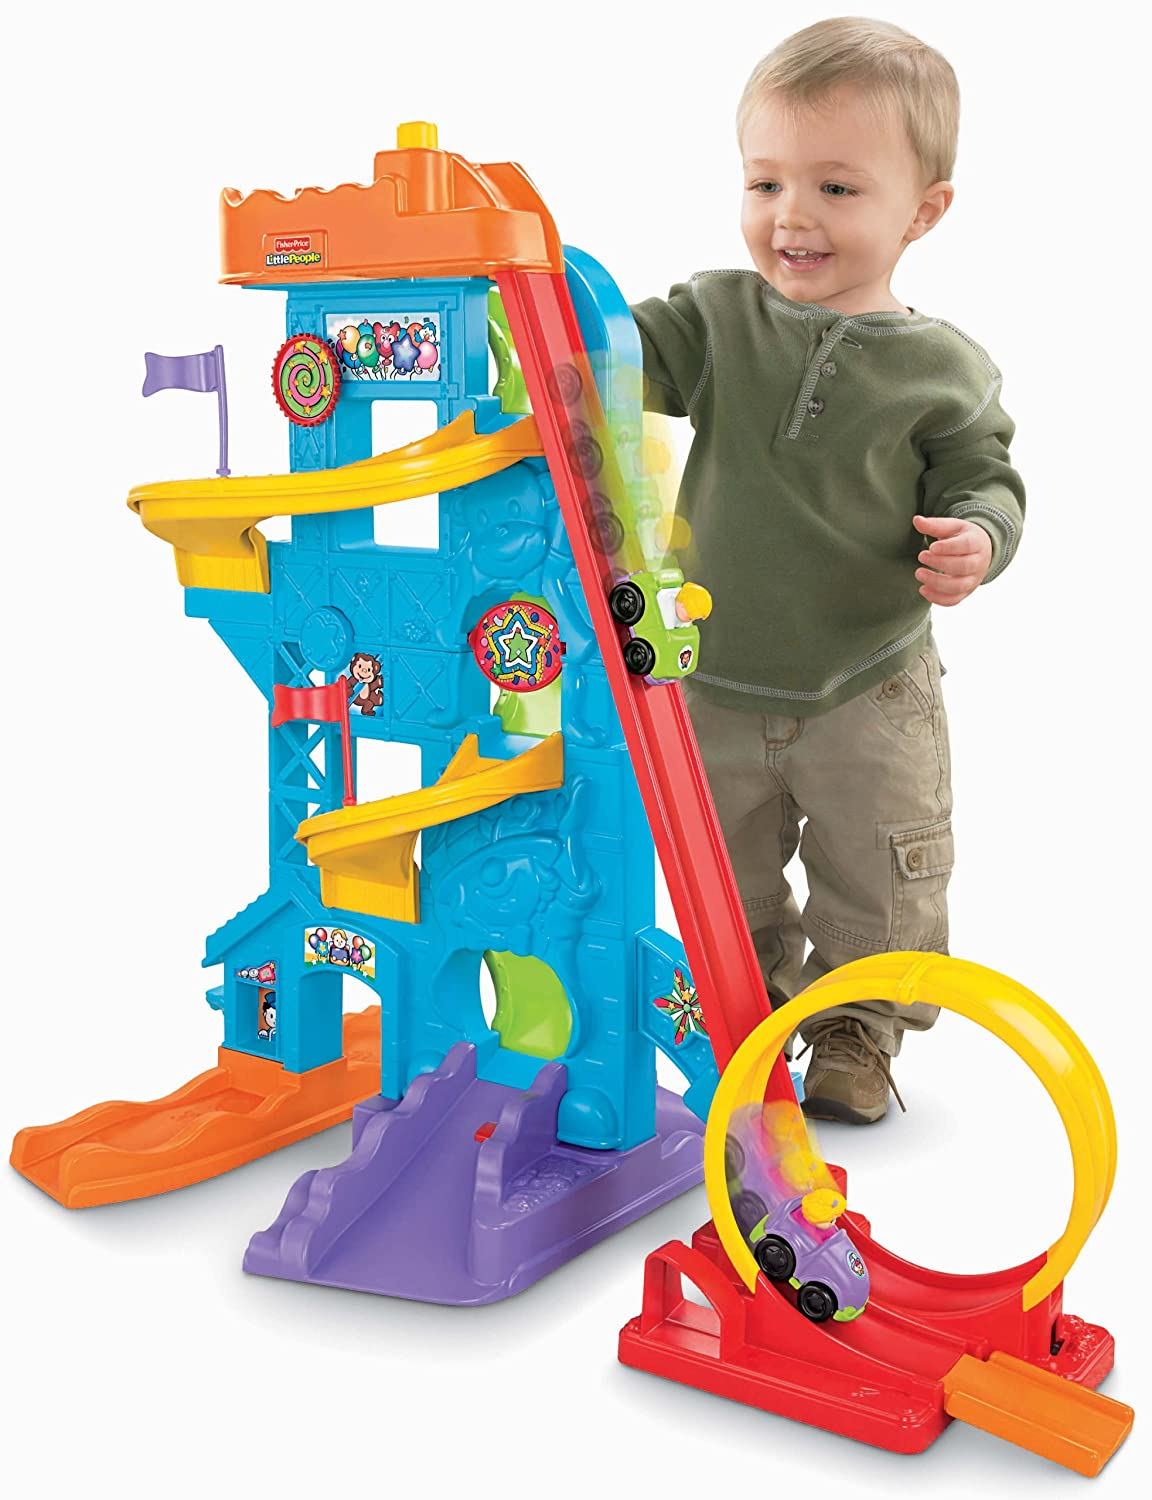 Used Toys For Toddlers : Best gifts for year old boys in itsy bitsy fun